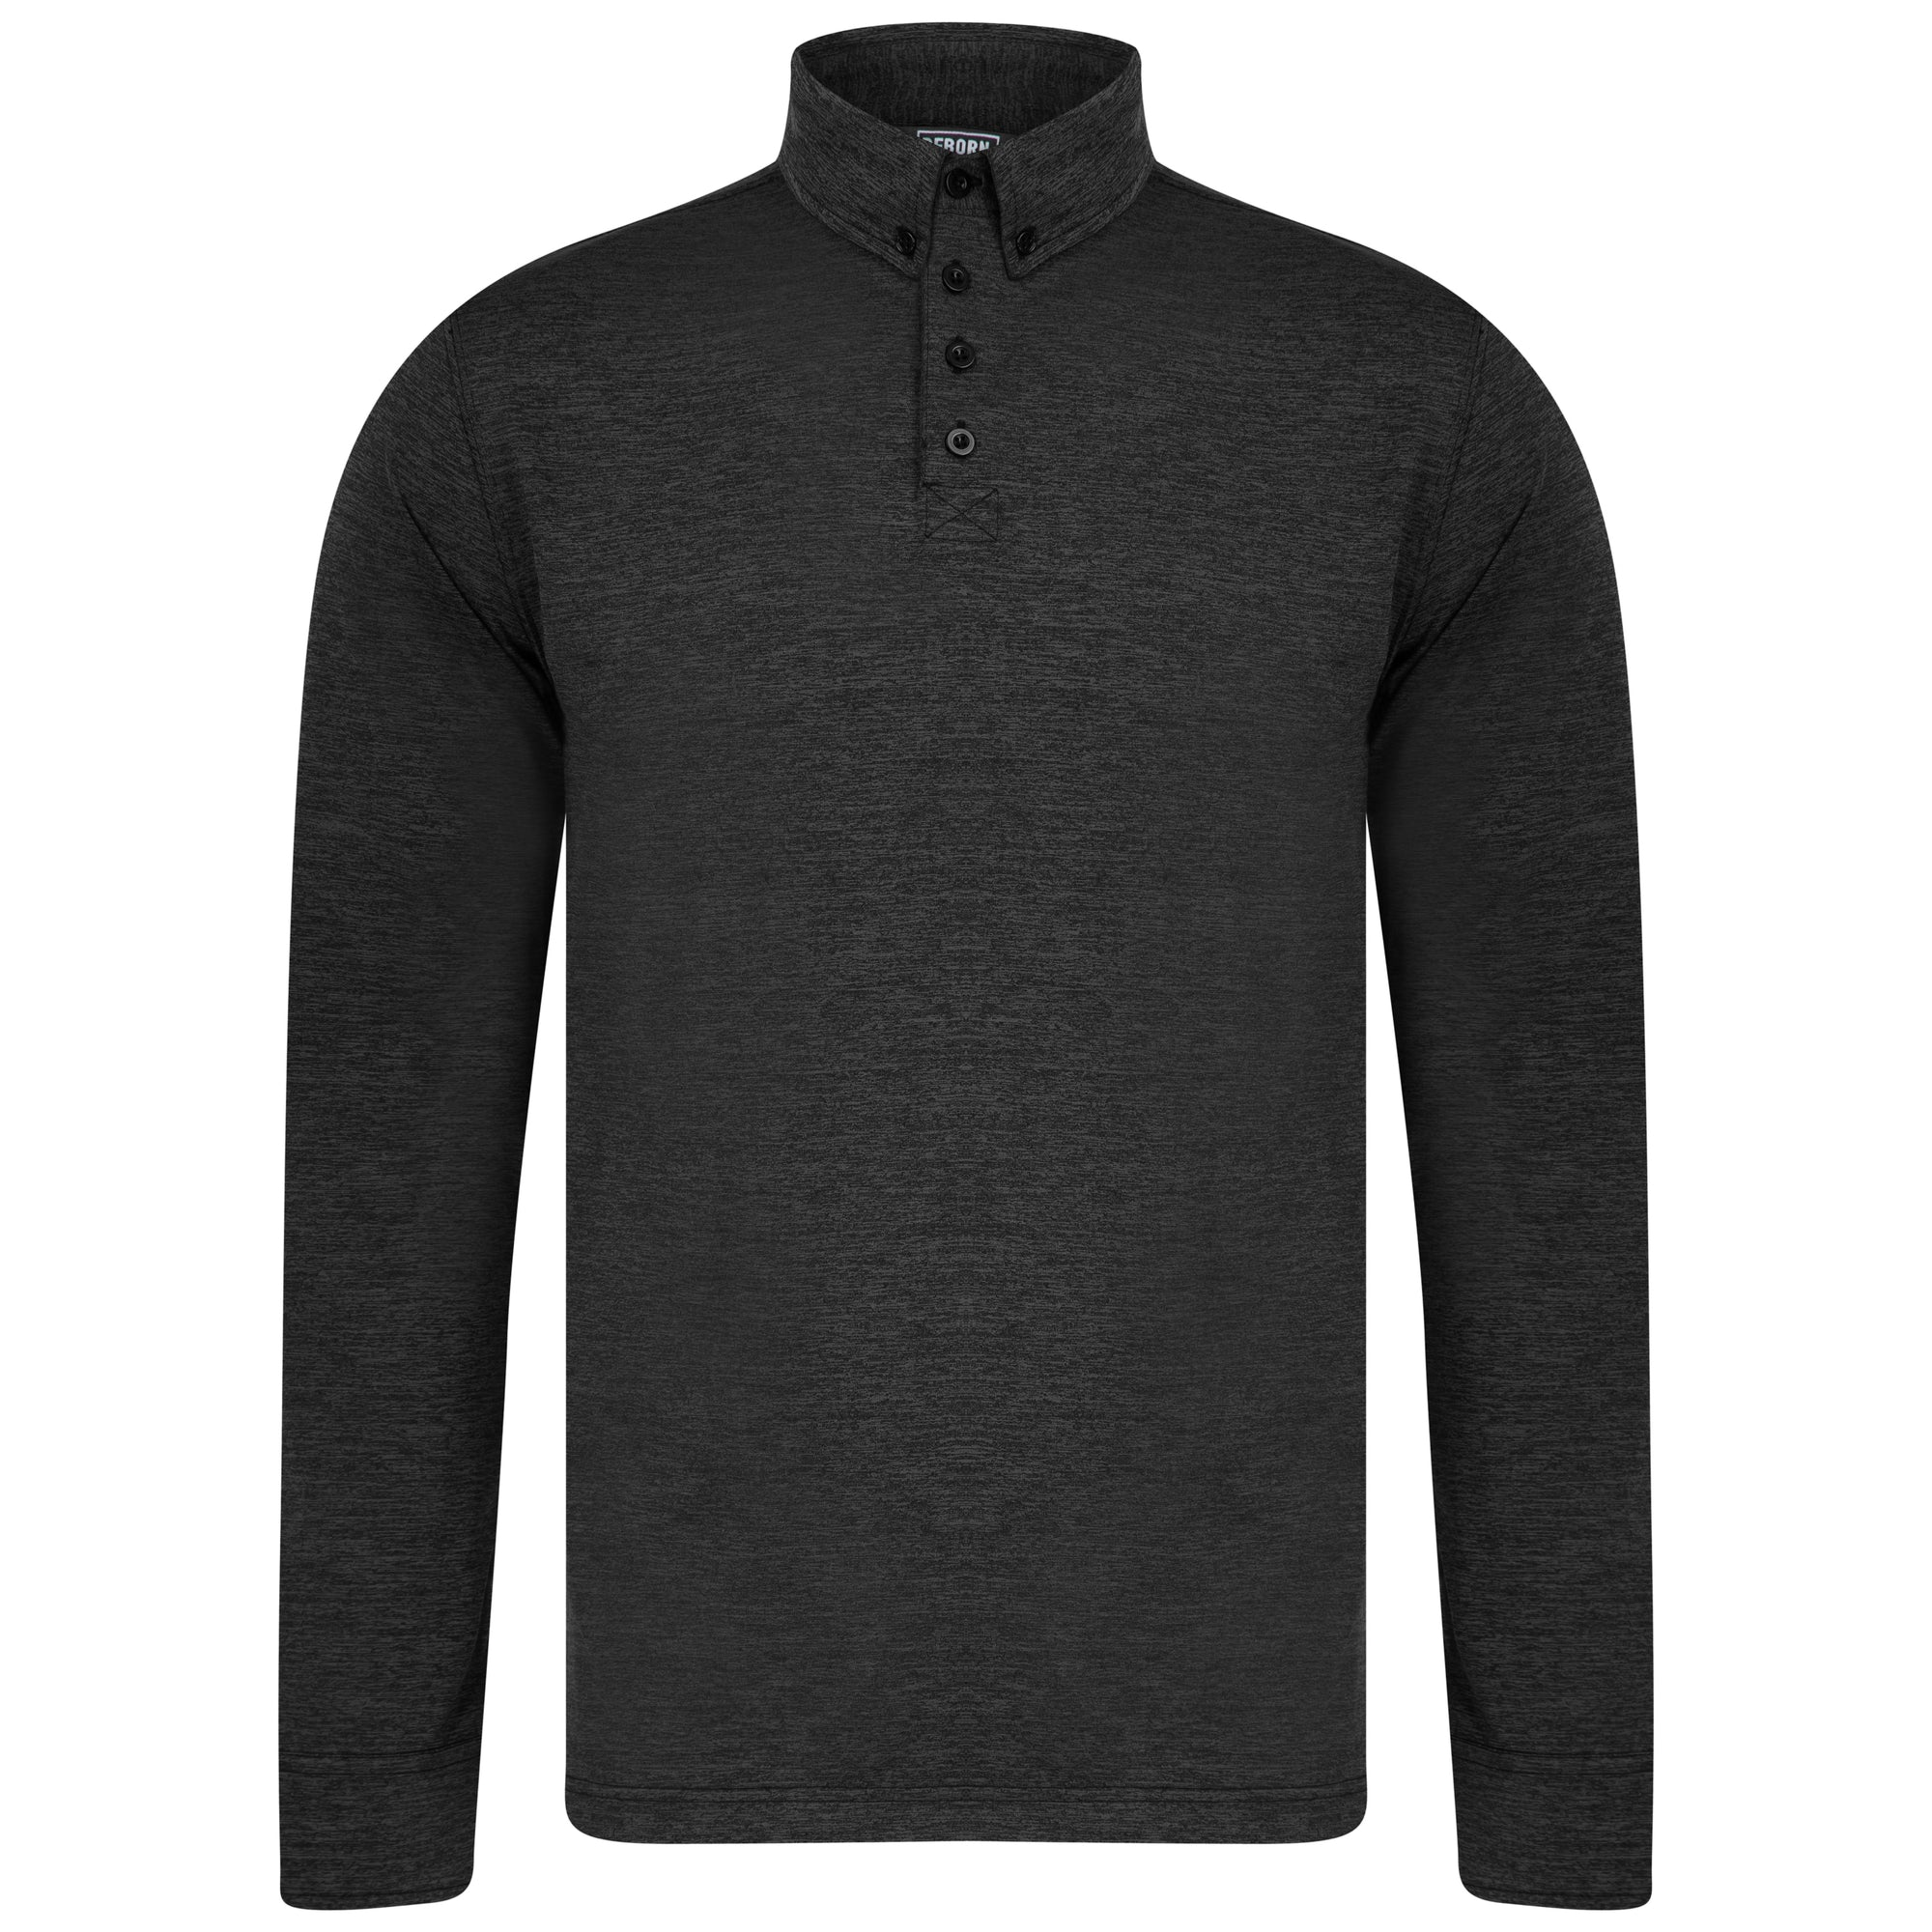 Recycled Performance Polo Shirt